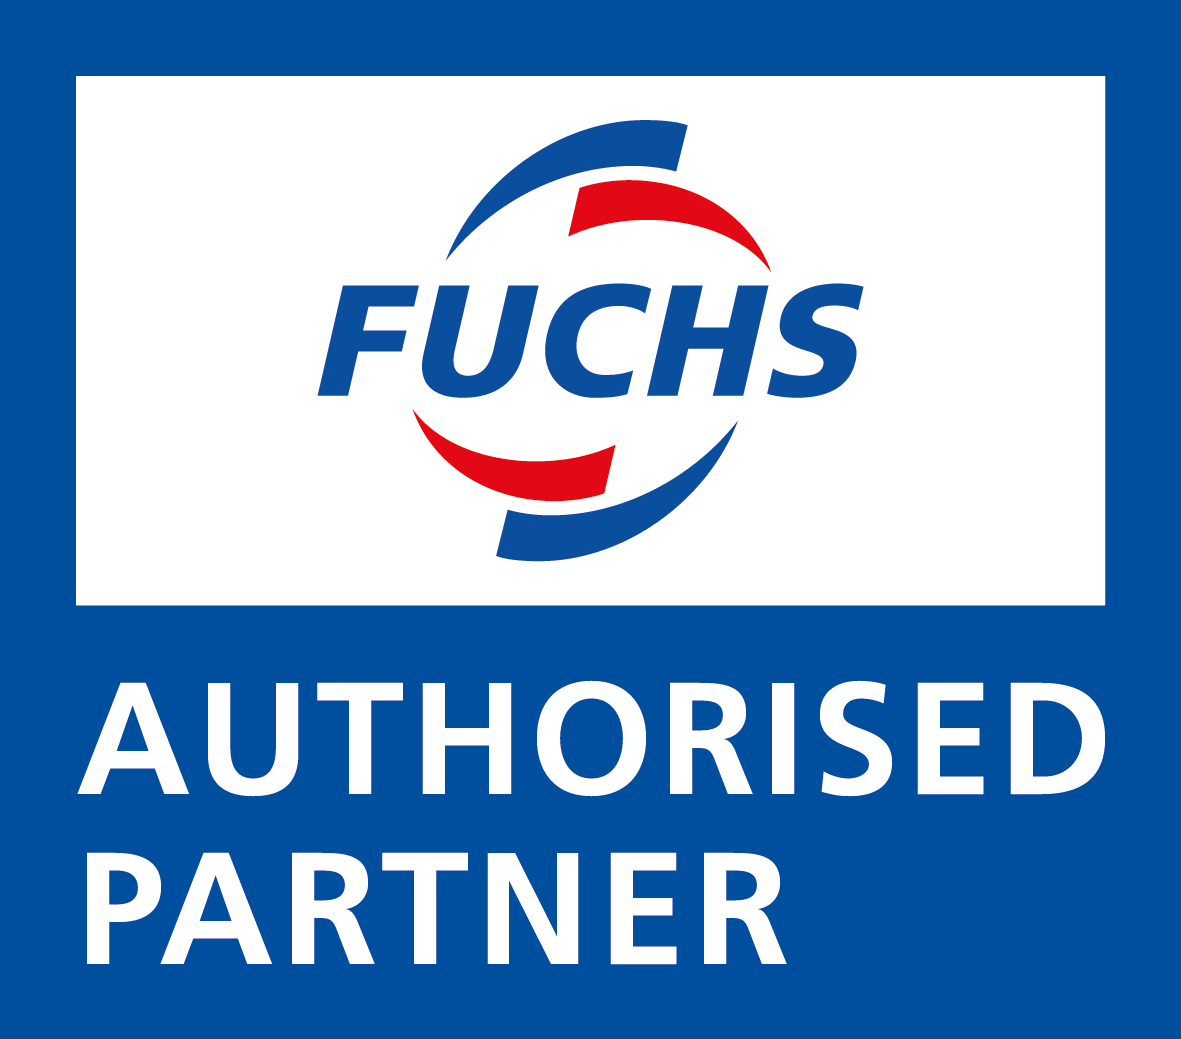 RZ_FUCHS_AFP_Label_4C-01-003